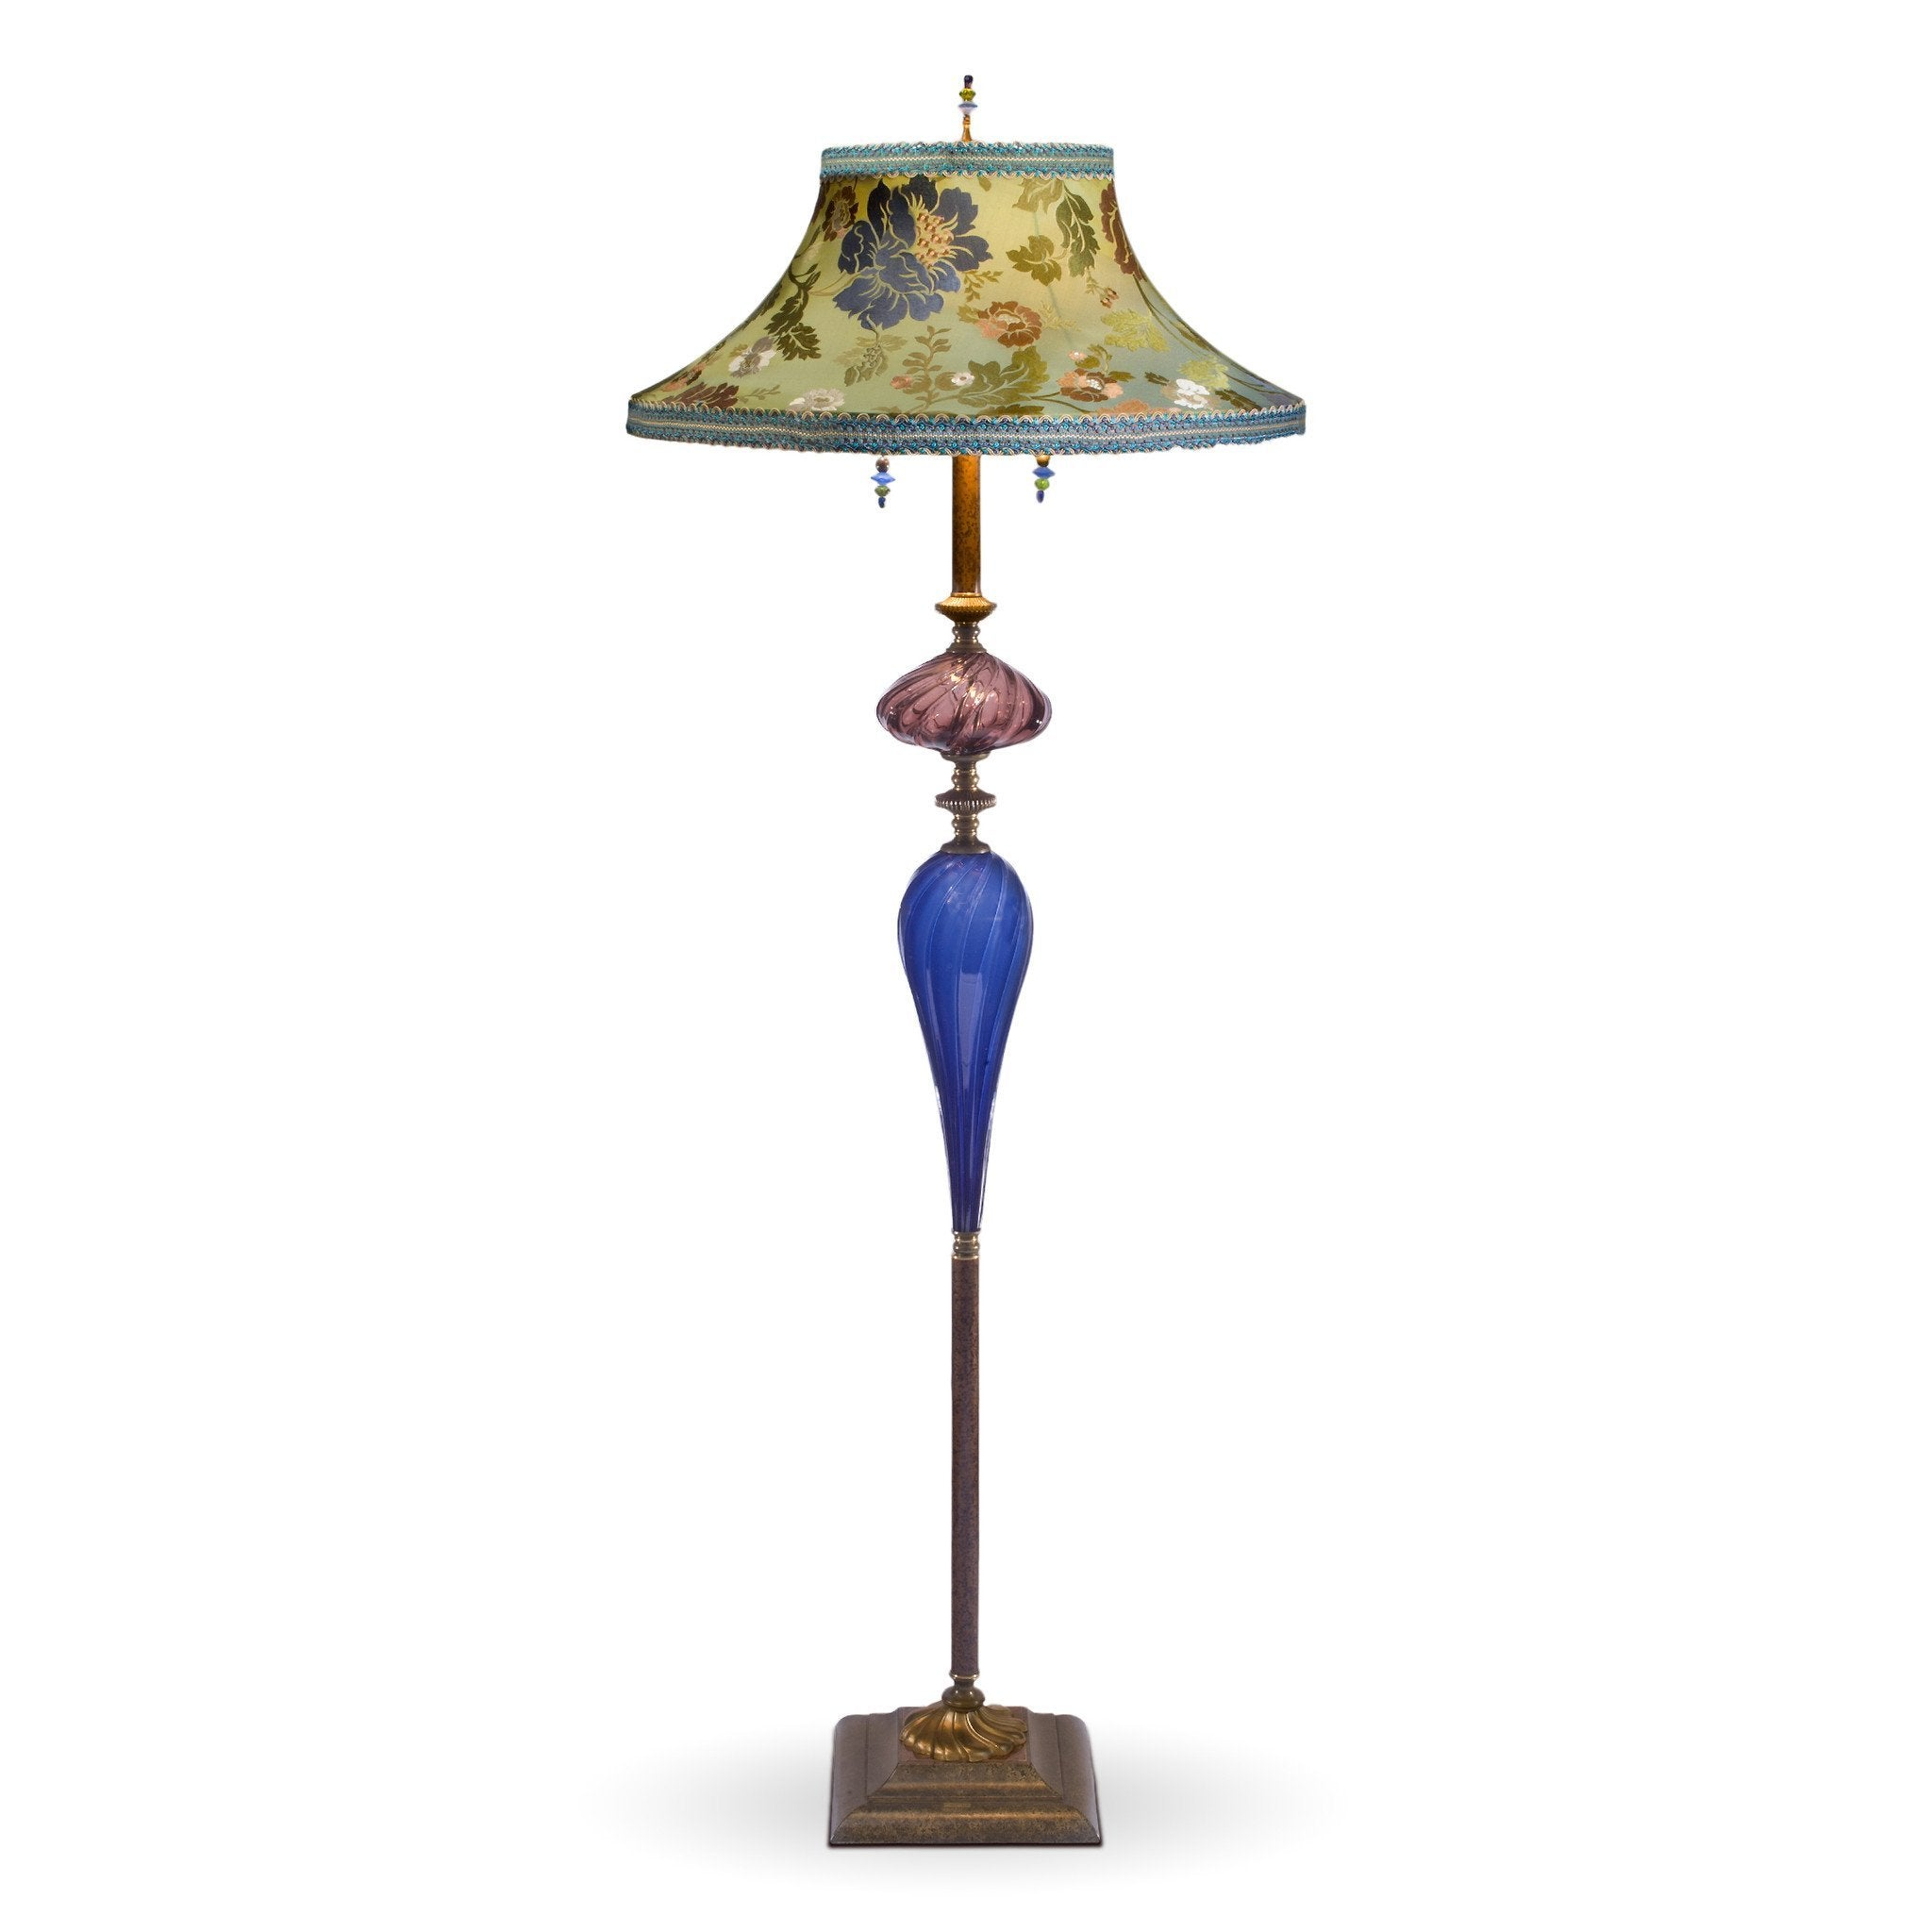 Picture of: Kinzig Design Stanley Floor Lamp Periwinkle Green Aubergine Blown Glass Silk Shade Sweetheart Gallery Contemporary Craft Gallery Fine American Craft Art Design Handmade Home Personal Accessories